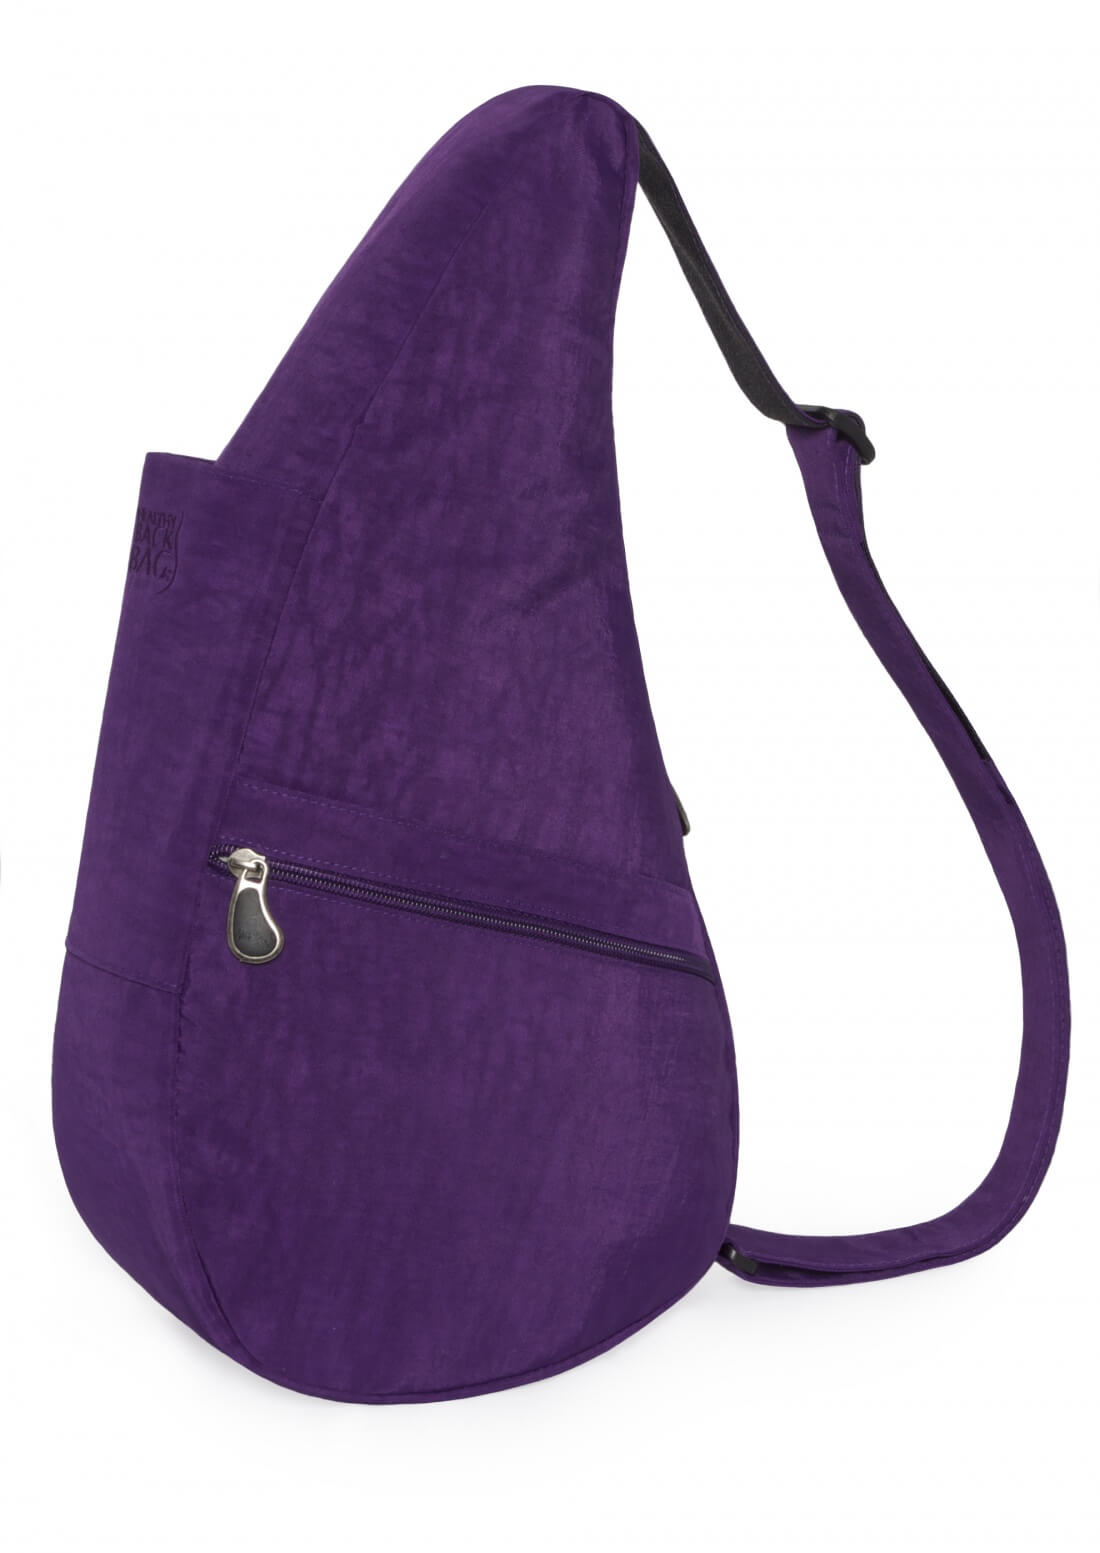 Healthy Back Bag Classic Textured Small 6103 Purple-12734